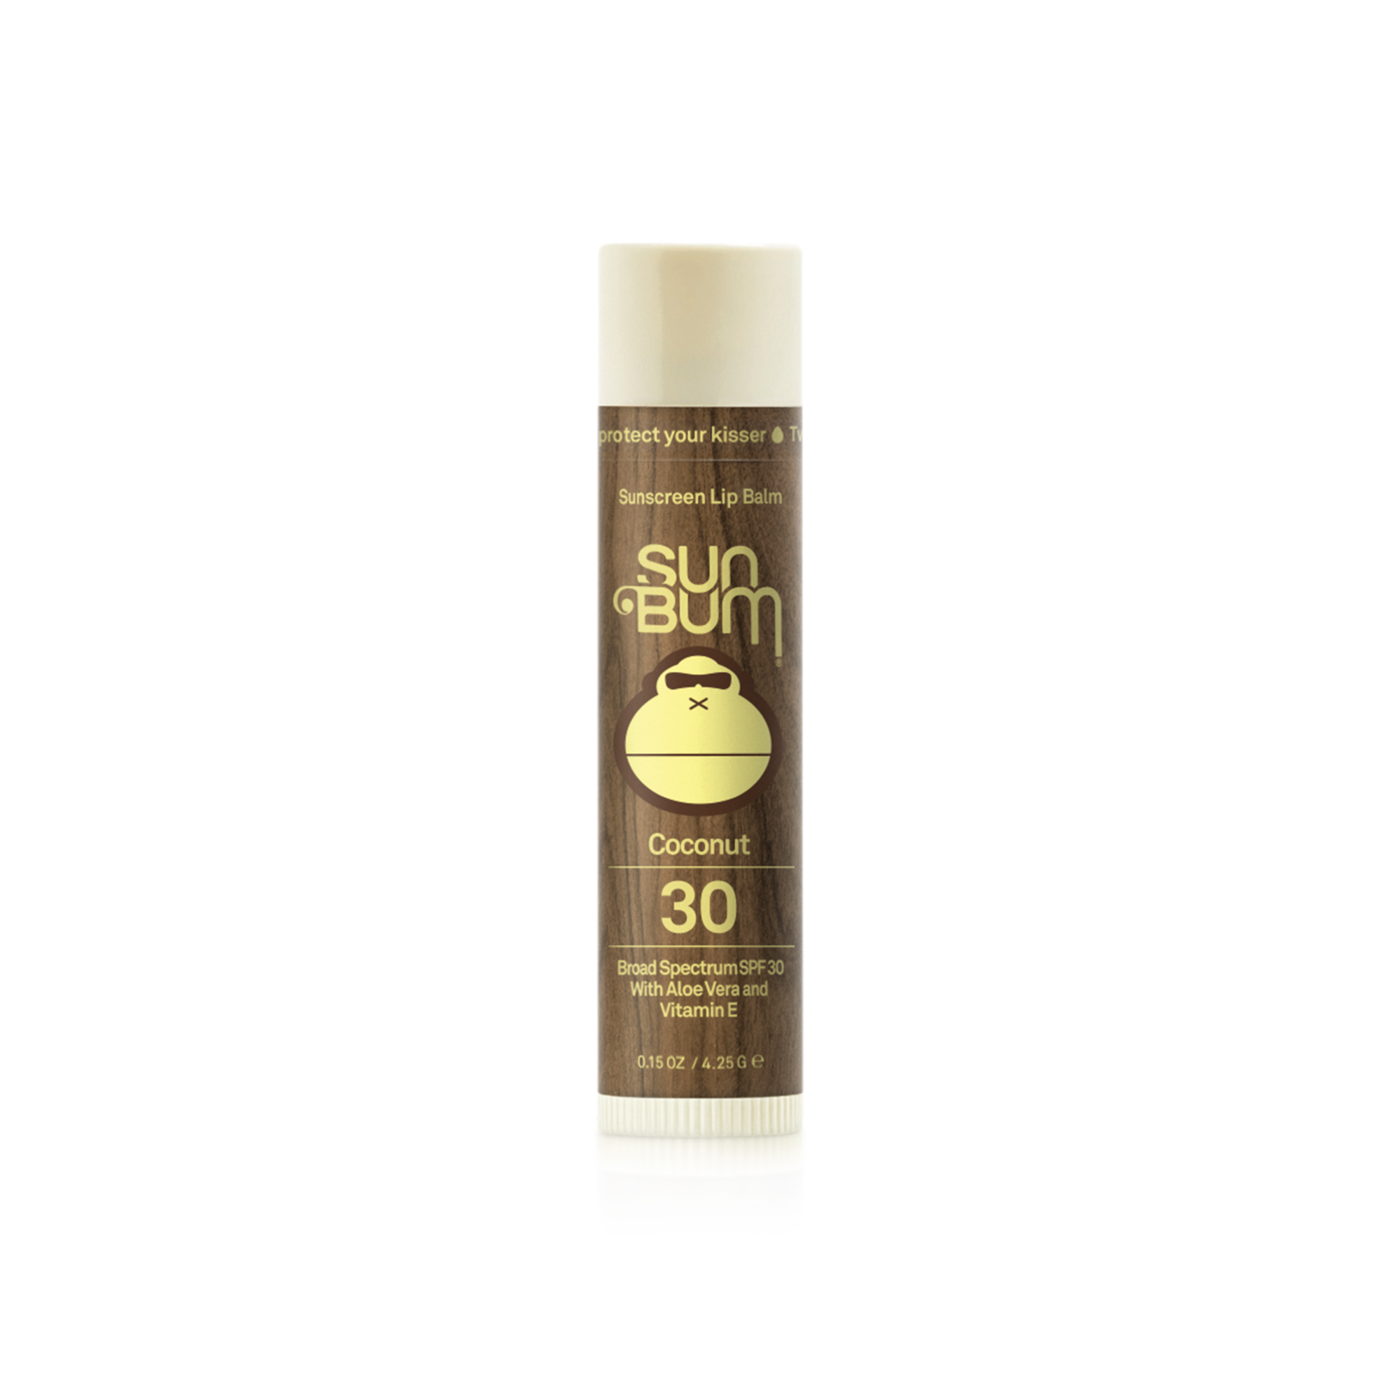 Sunscreen Lip Balm SPF 30